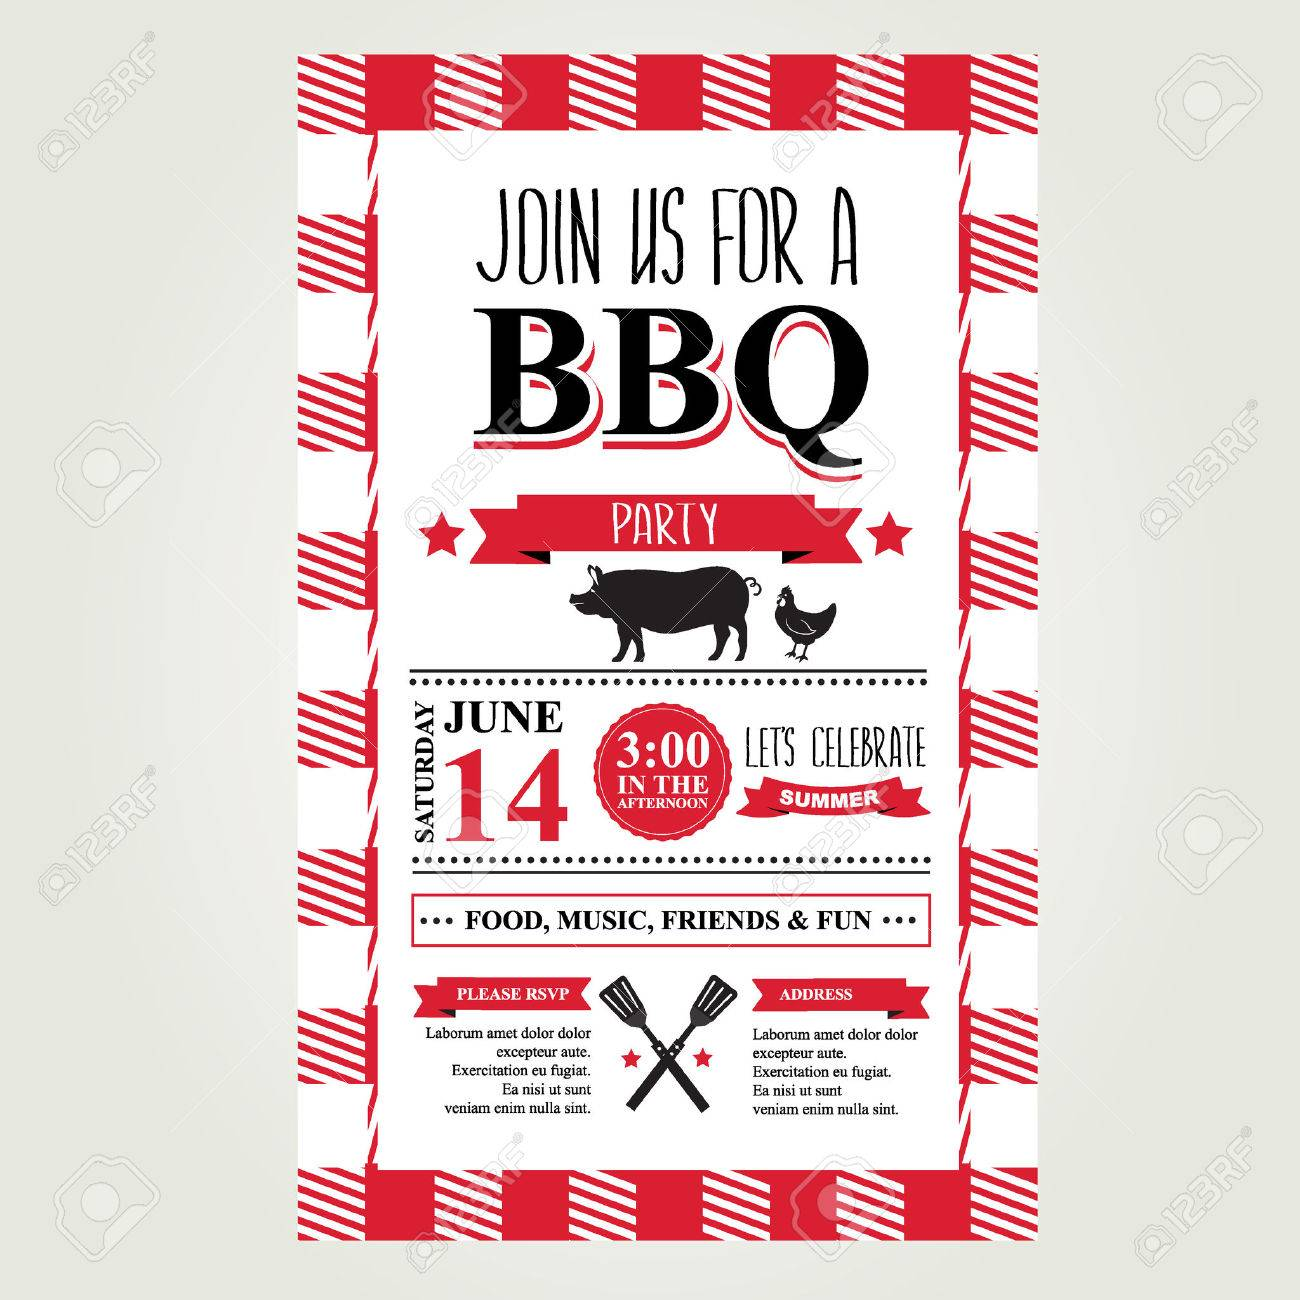 barbecue party invitation bbq brochure menu design royalty free